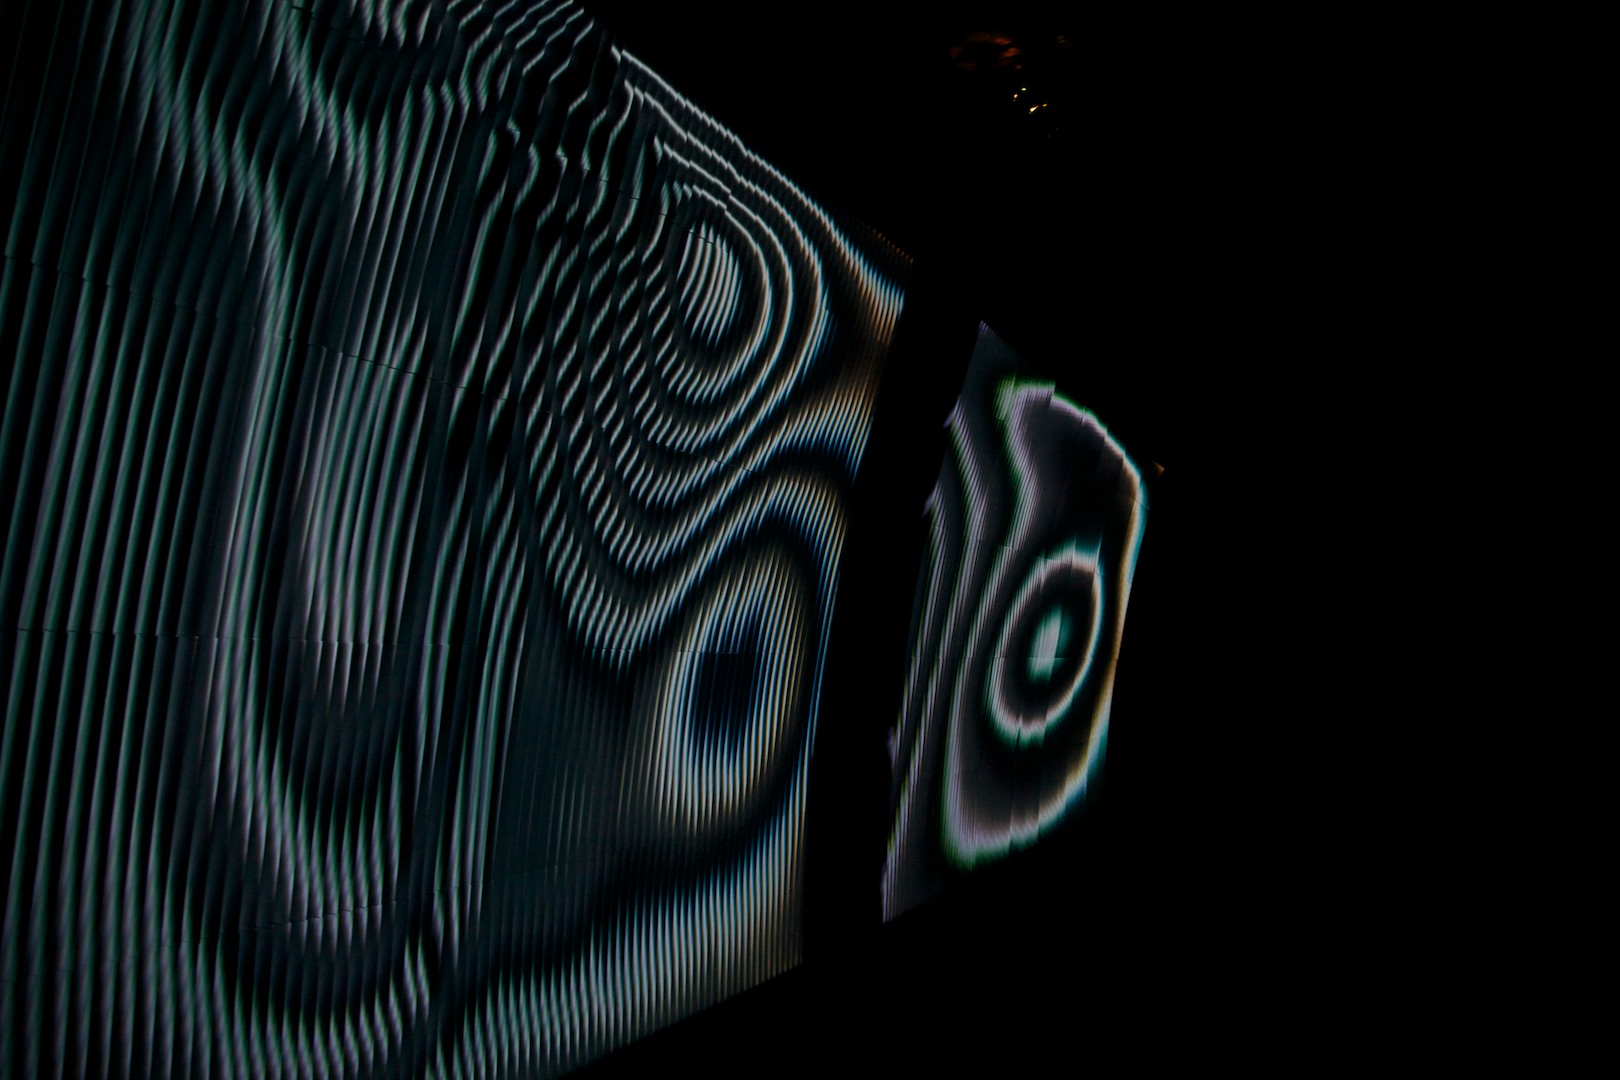 Standing Wave (2013) by Cuppetelli and Mendoza